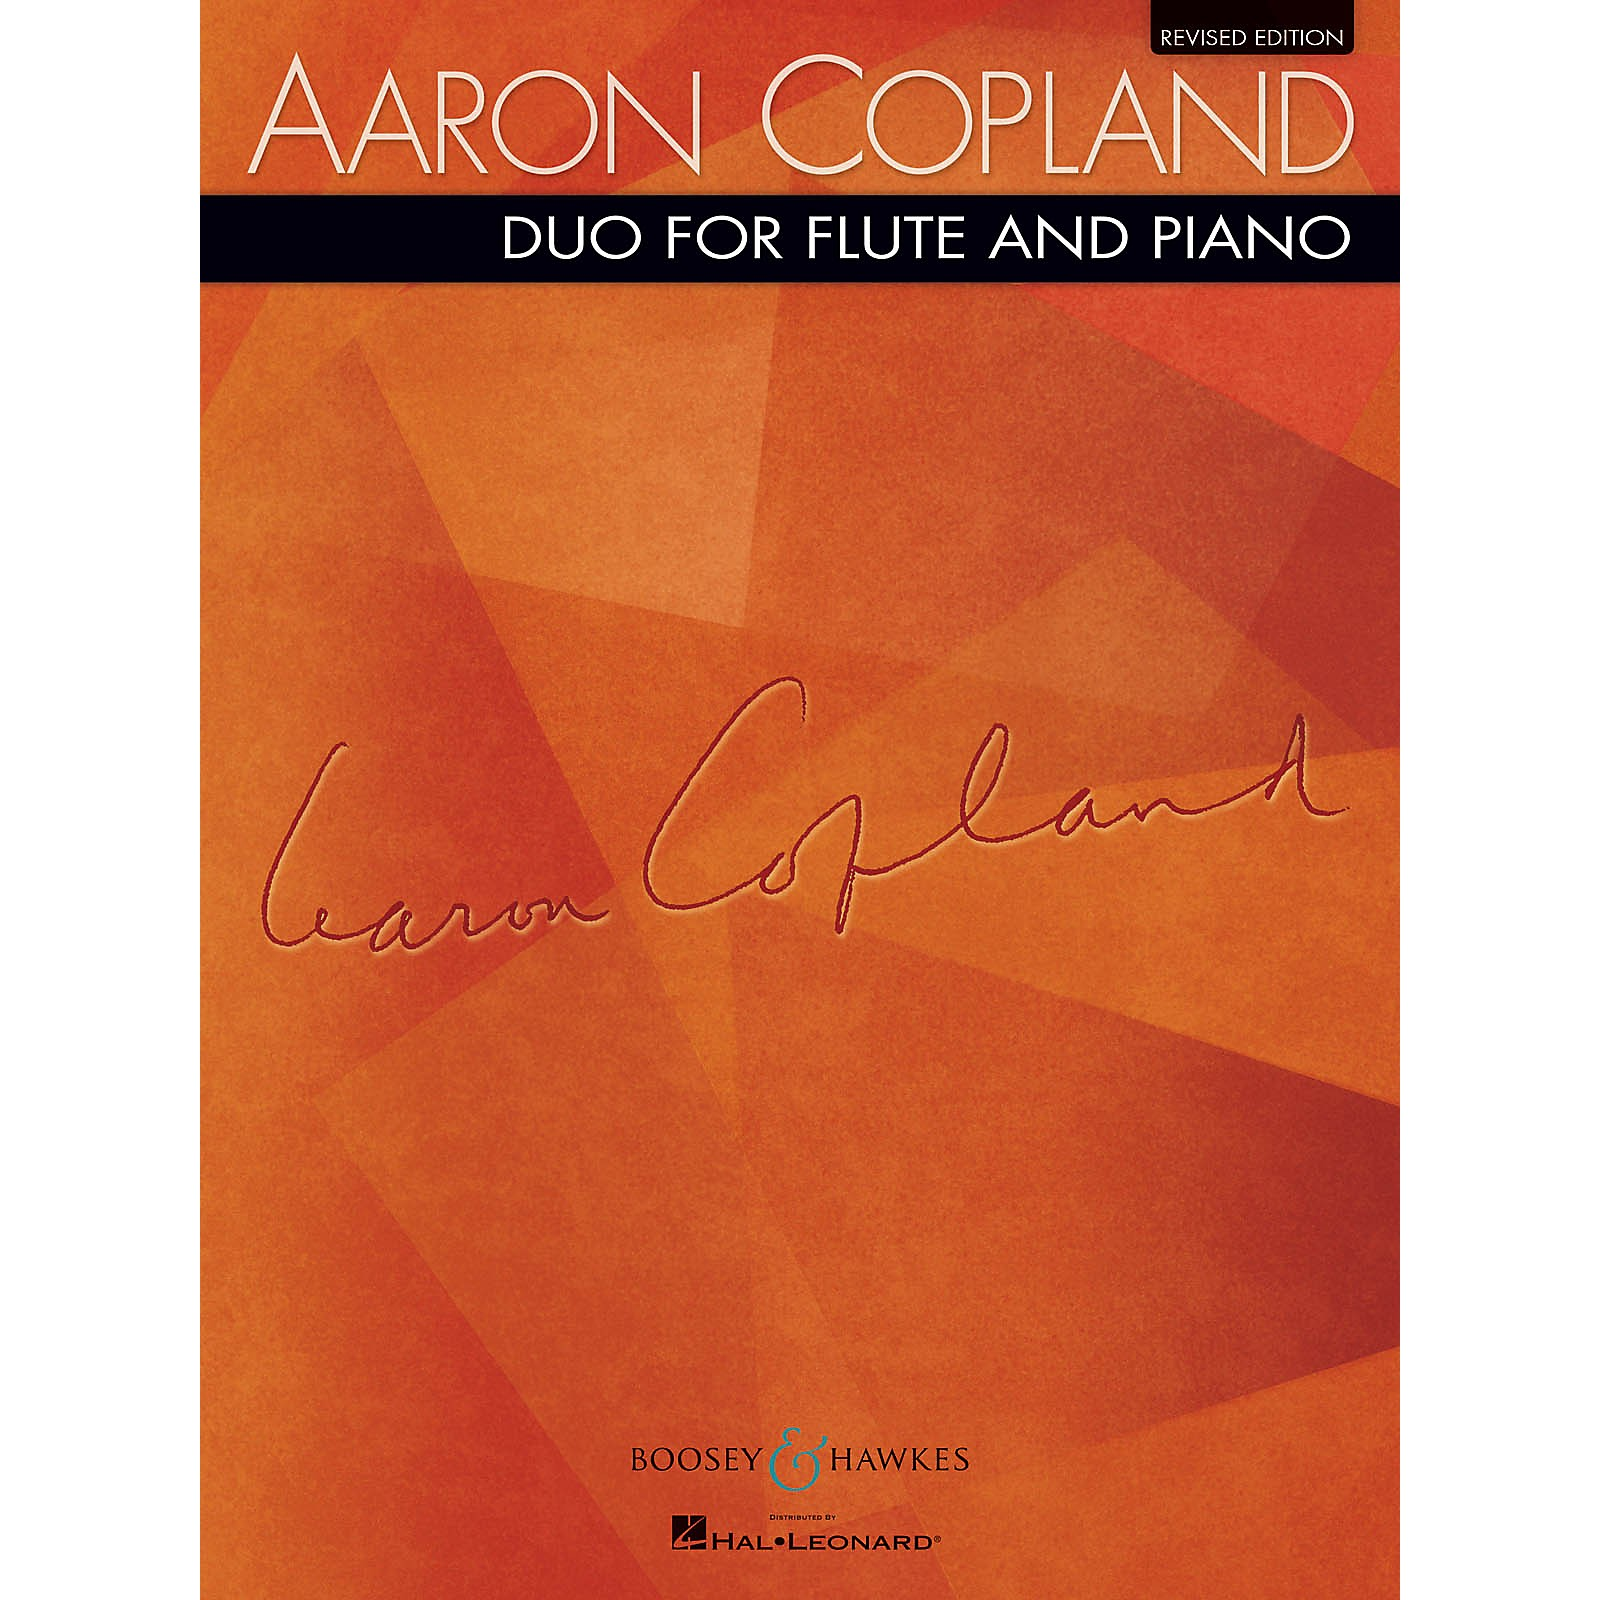 Boosey and Hawkes Duo for Flute and Piano (Revised Edition) Boosey & Hawkes Chamber Music Series Softcover